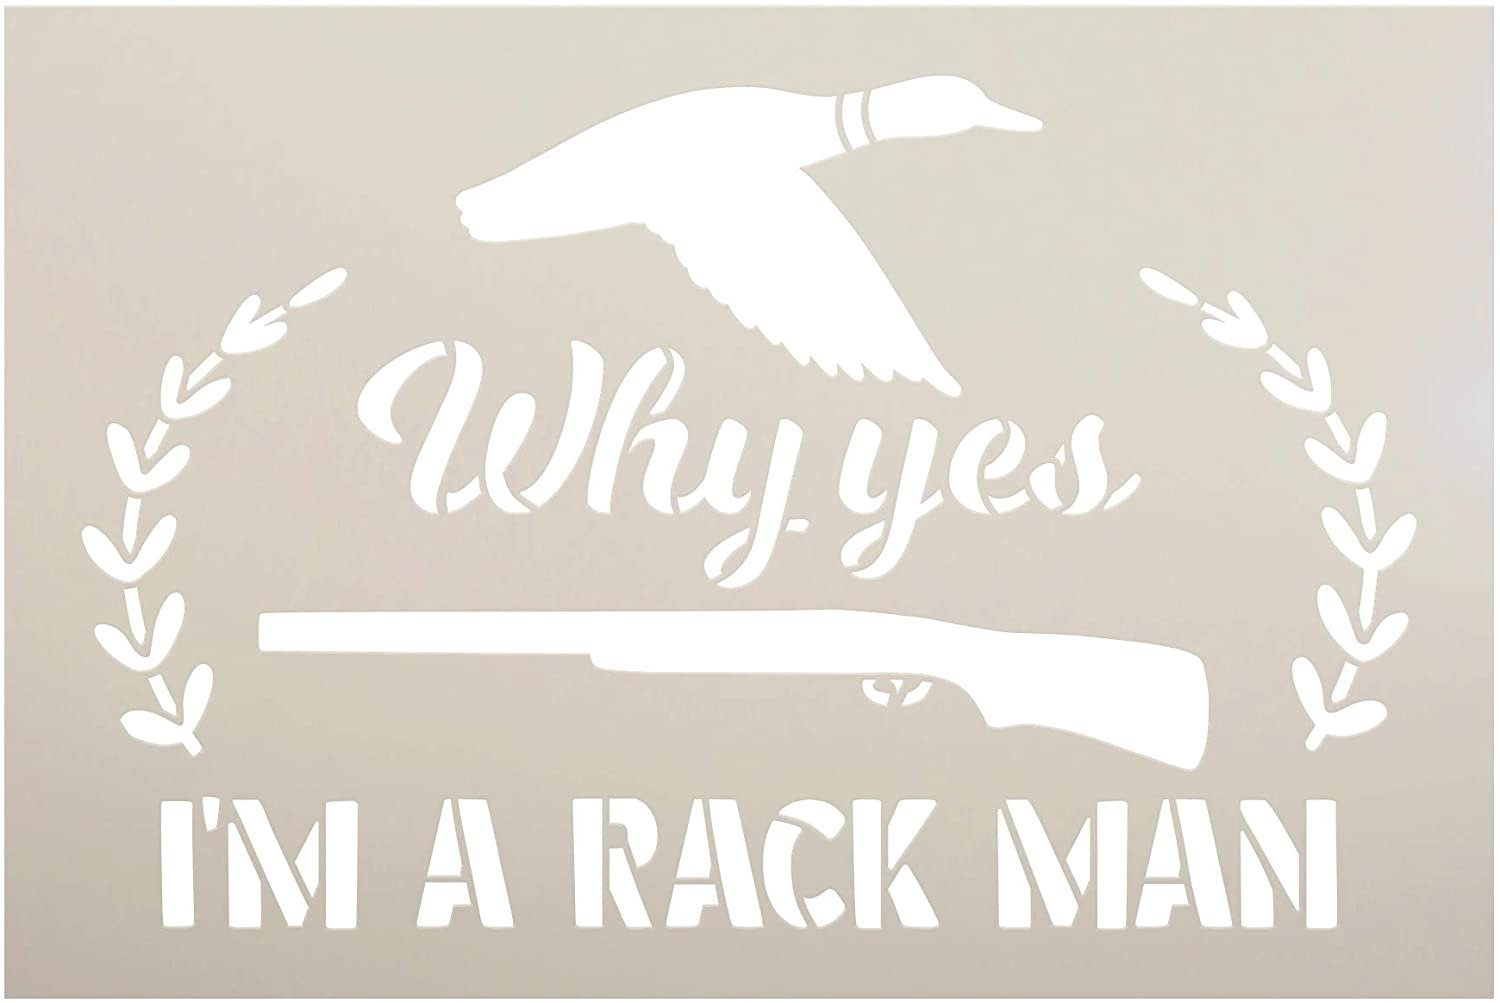 Why Yes Im a Rack Man Stencil by StudioR12   DIY Hunting Gun Duck Home Decor Gift   Craft & Paint Wood Sign   Reusable Mylar Template   Select Size